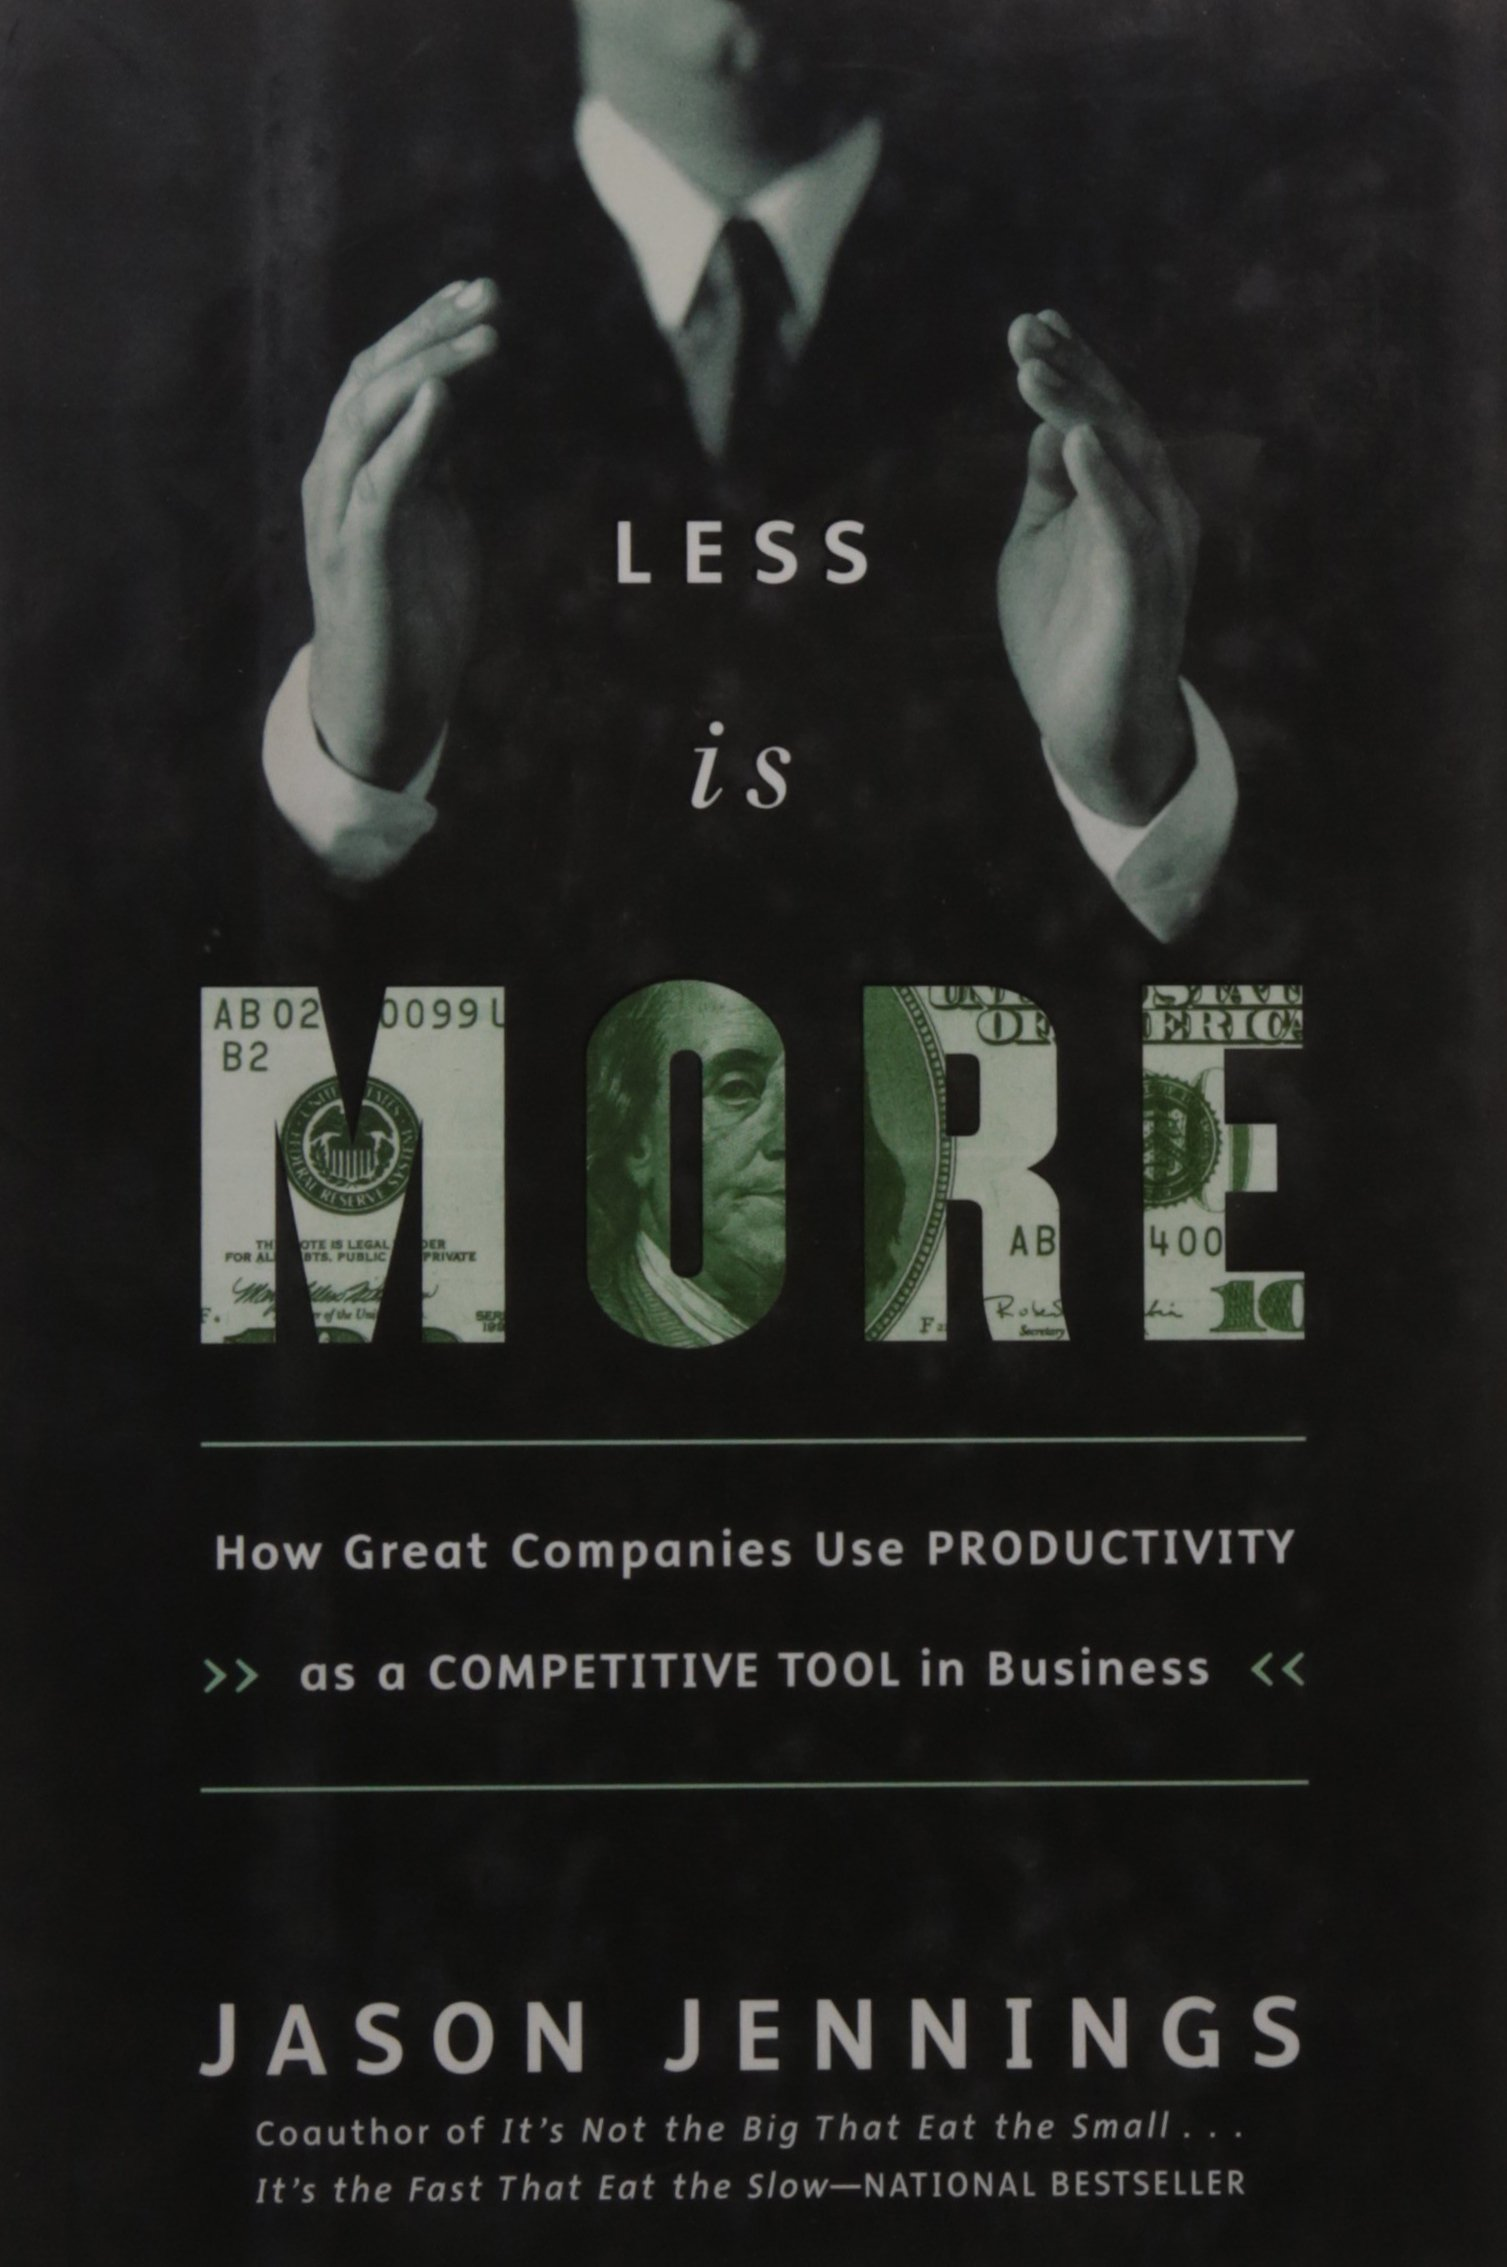 Less More Great Companies Productivity product image